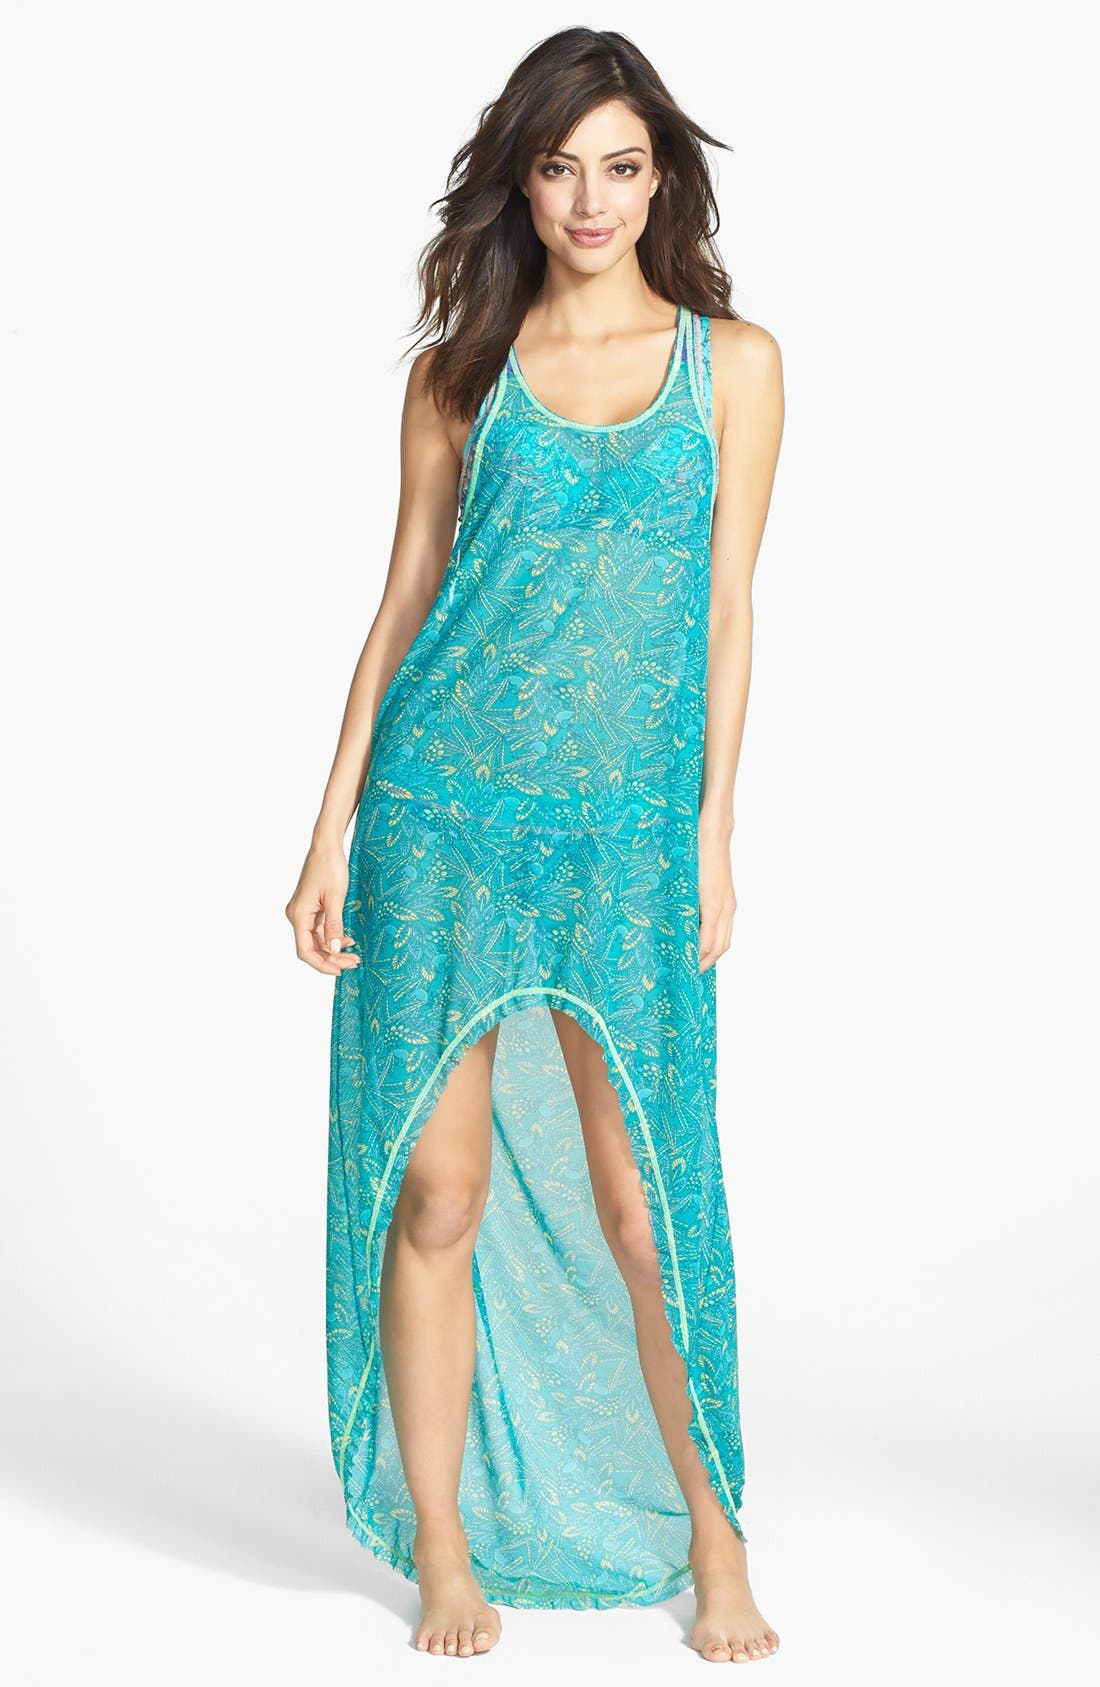 Alternate Image 1 Selected - Maaji 'Darling Sparrow' High/Low Cover-Up Dress (Nordstrom Exclusive)